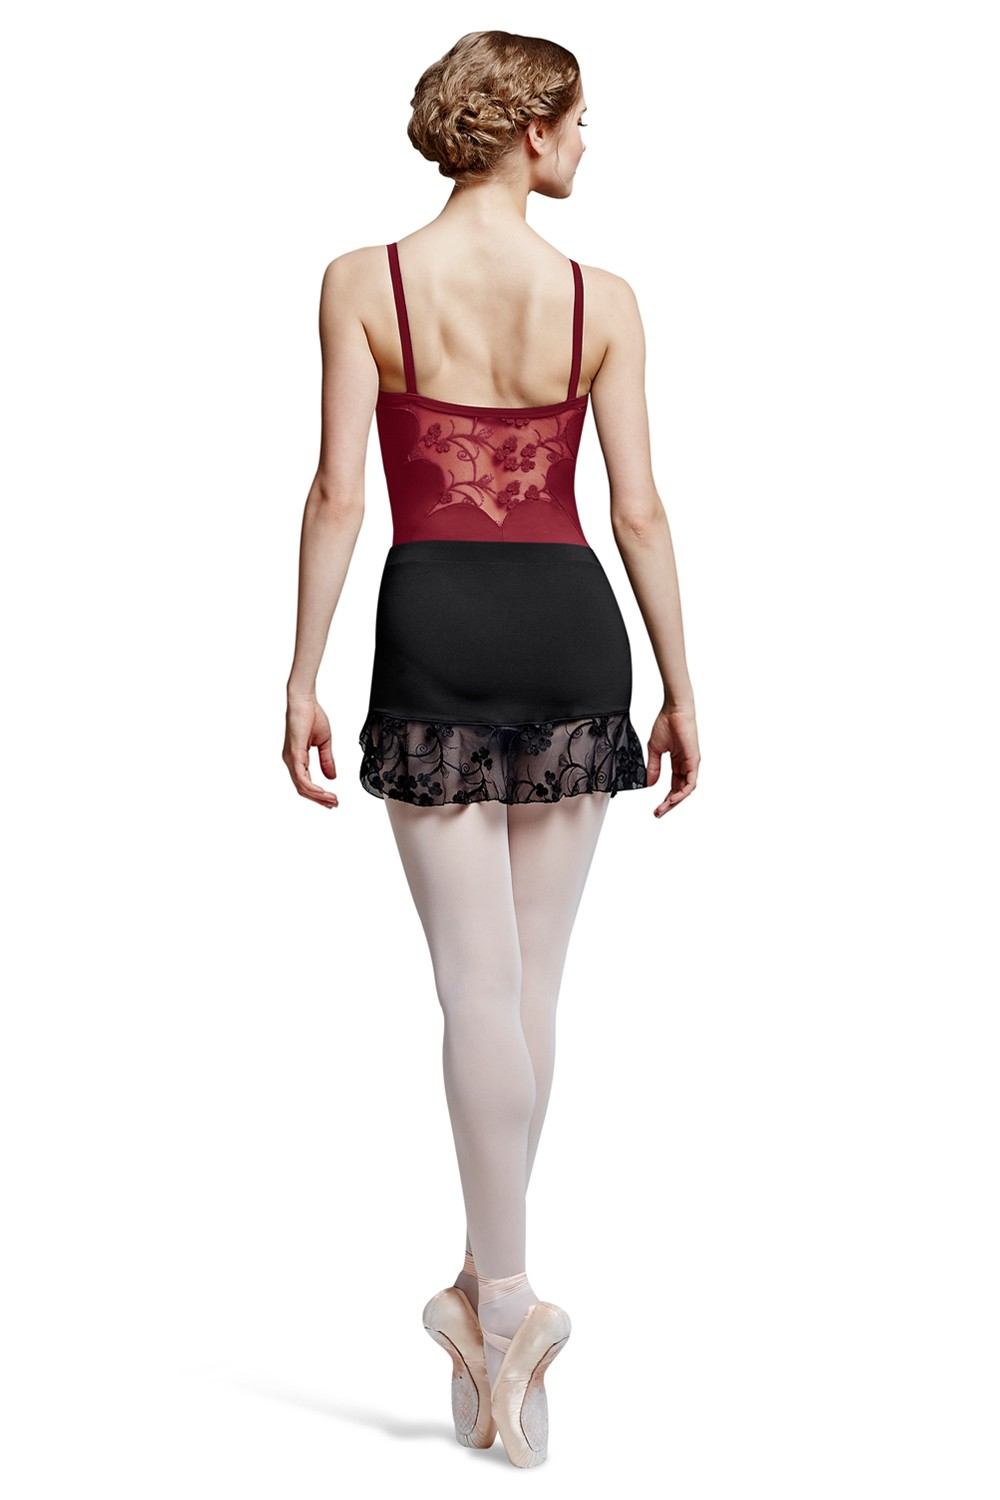 Mamane Women's Dance Leotards